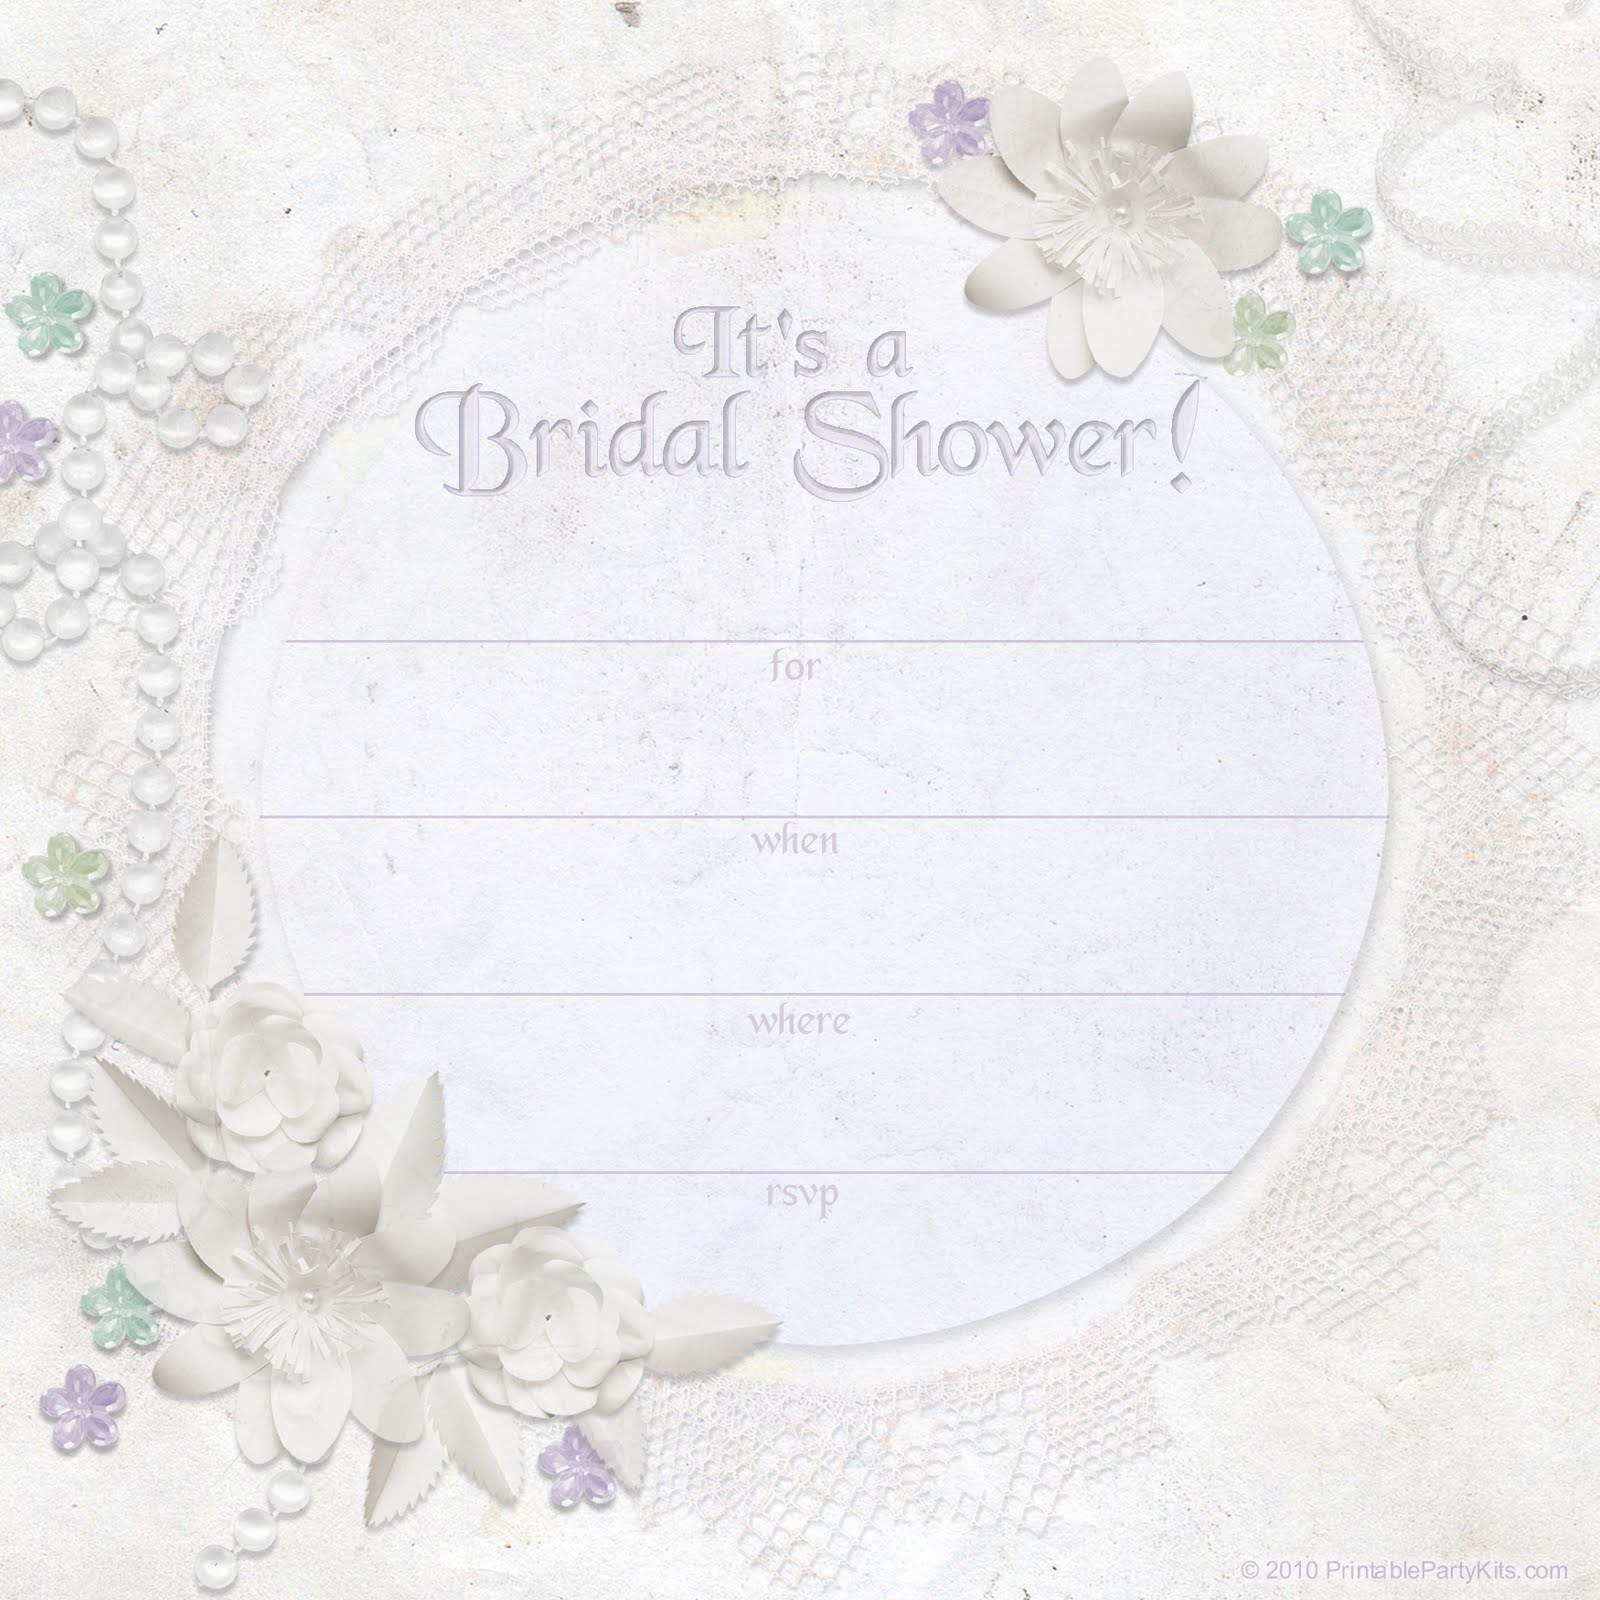 Click on the free bridal shower invitation to see it full size and ...